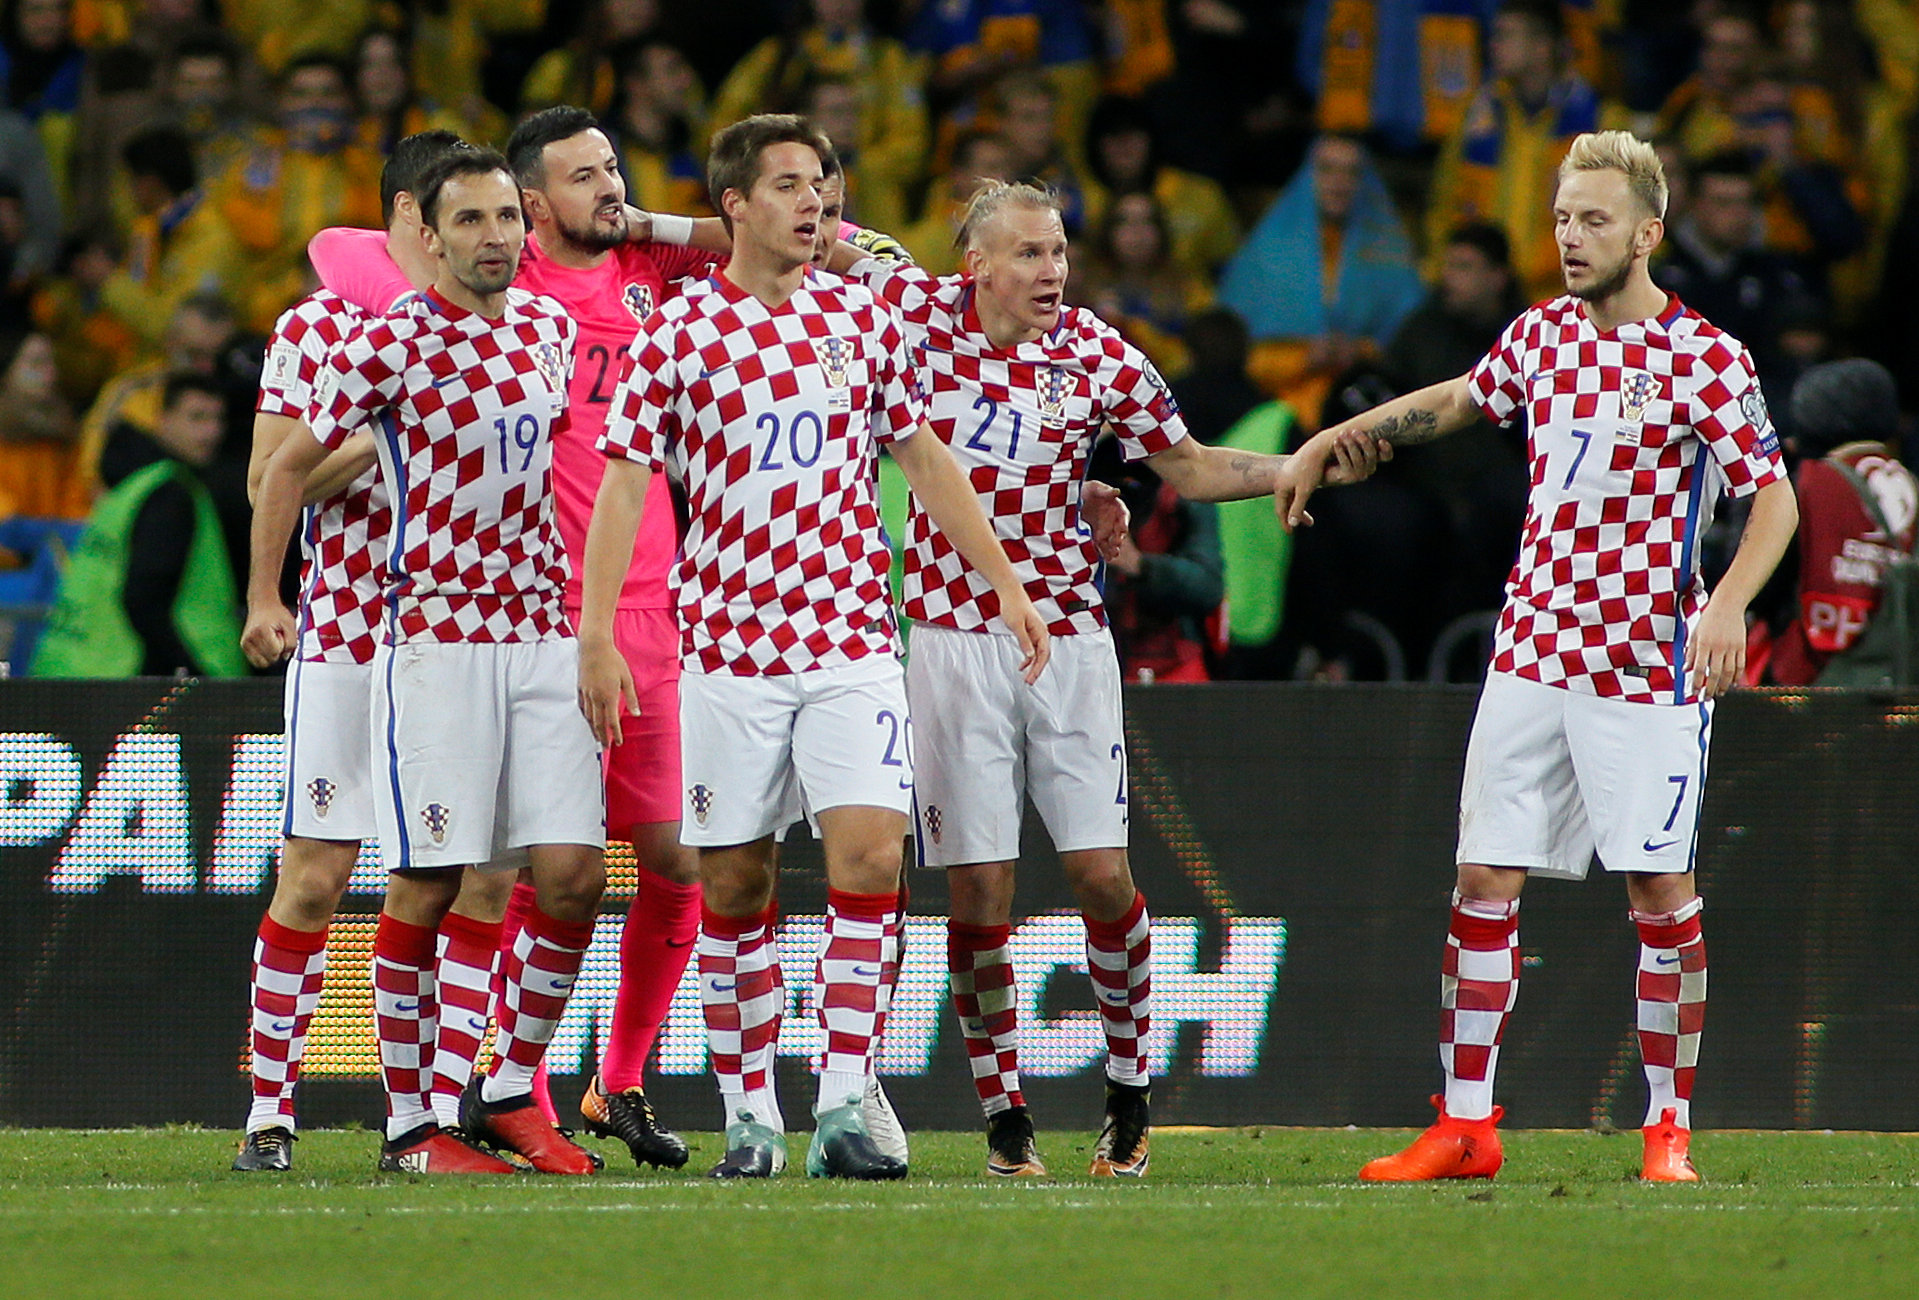 2017-10-09T210608Z_313162789_RC1D62705F00_RTRMADP_3_SOCCER-WORLDCUP-UKR-CRO_1